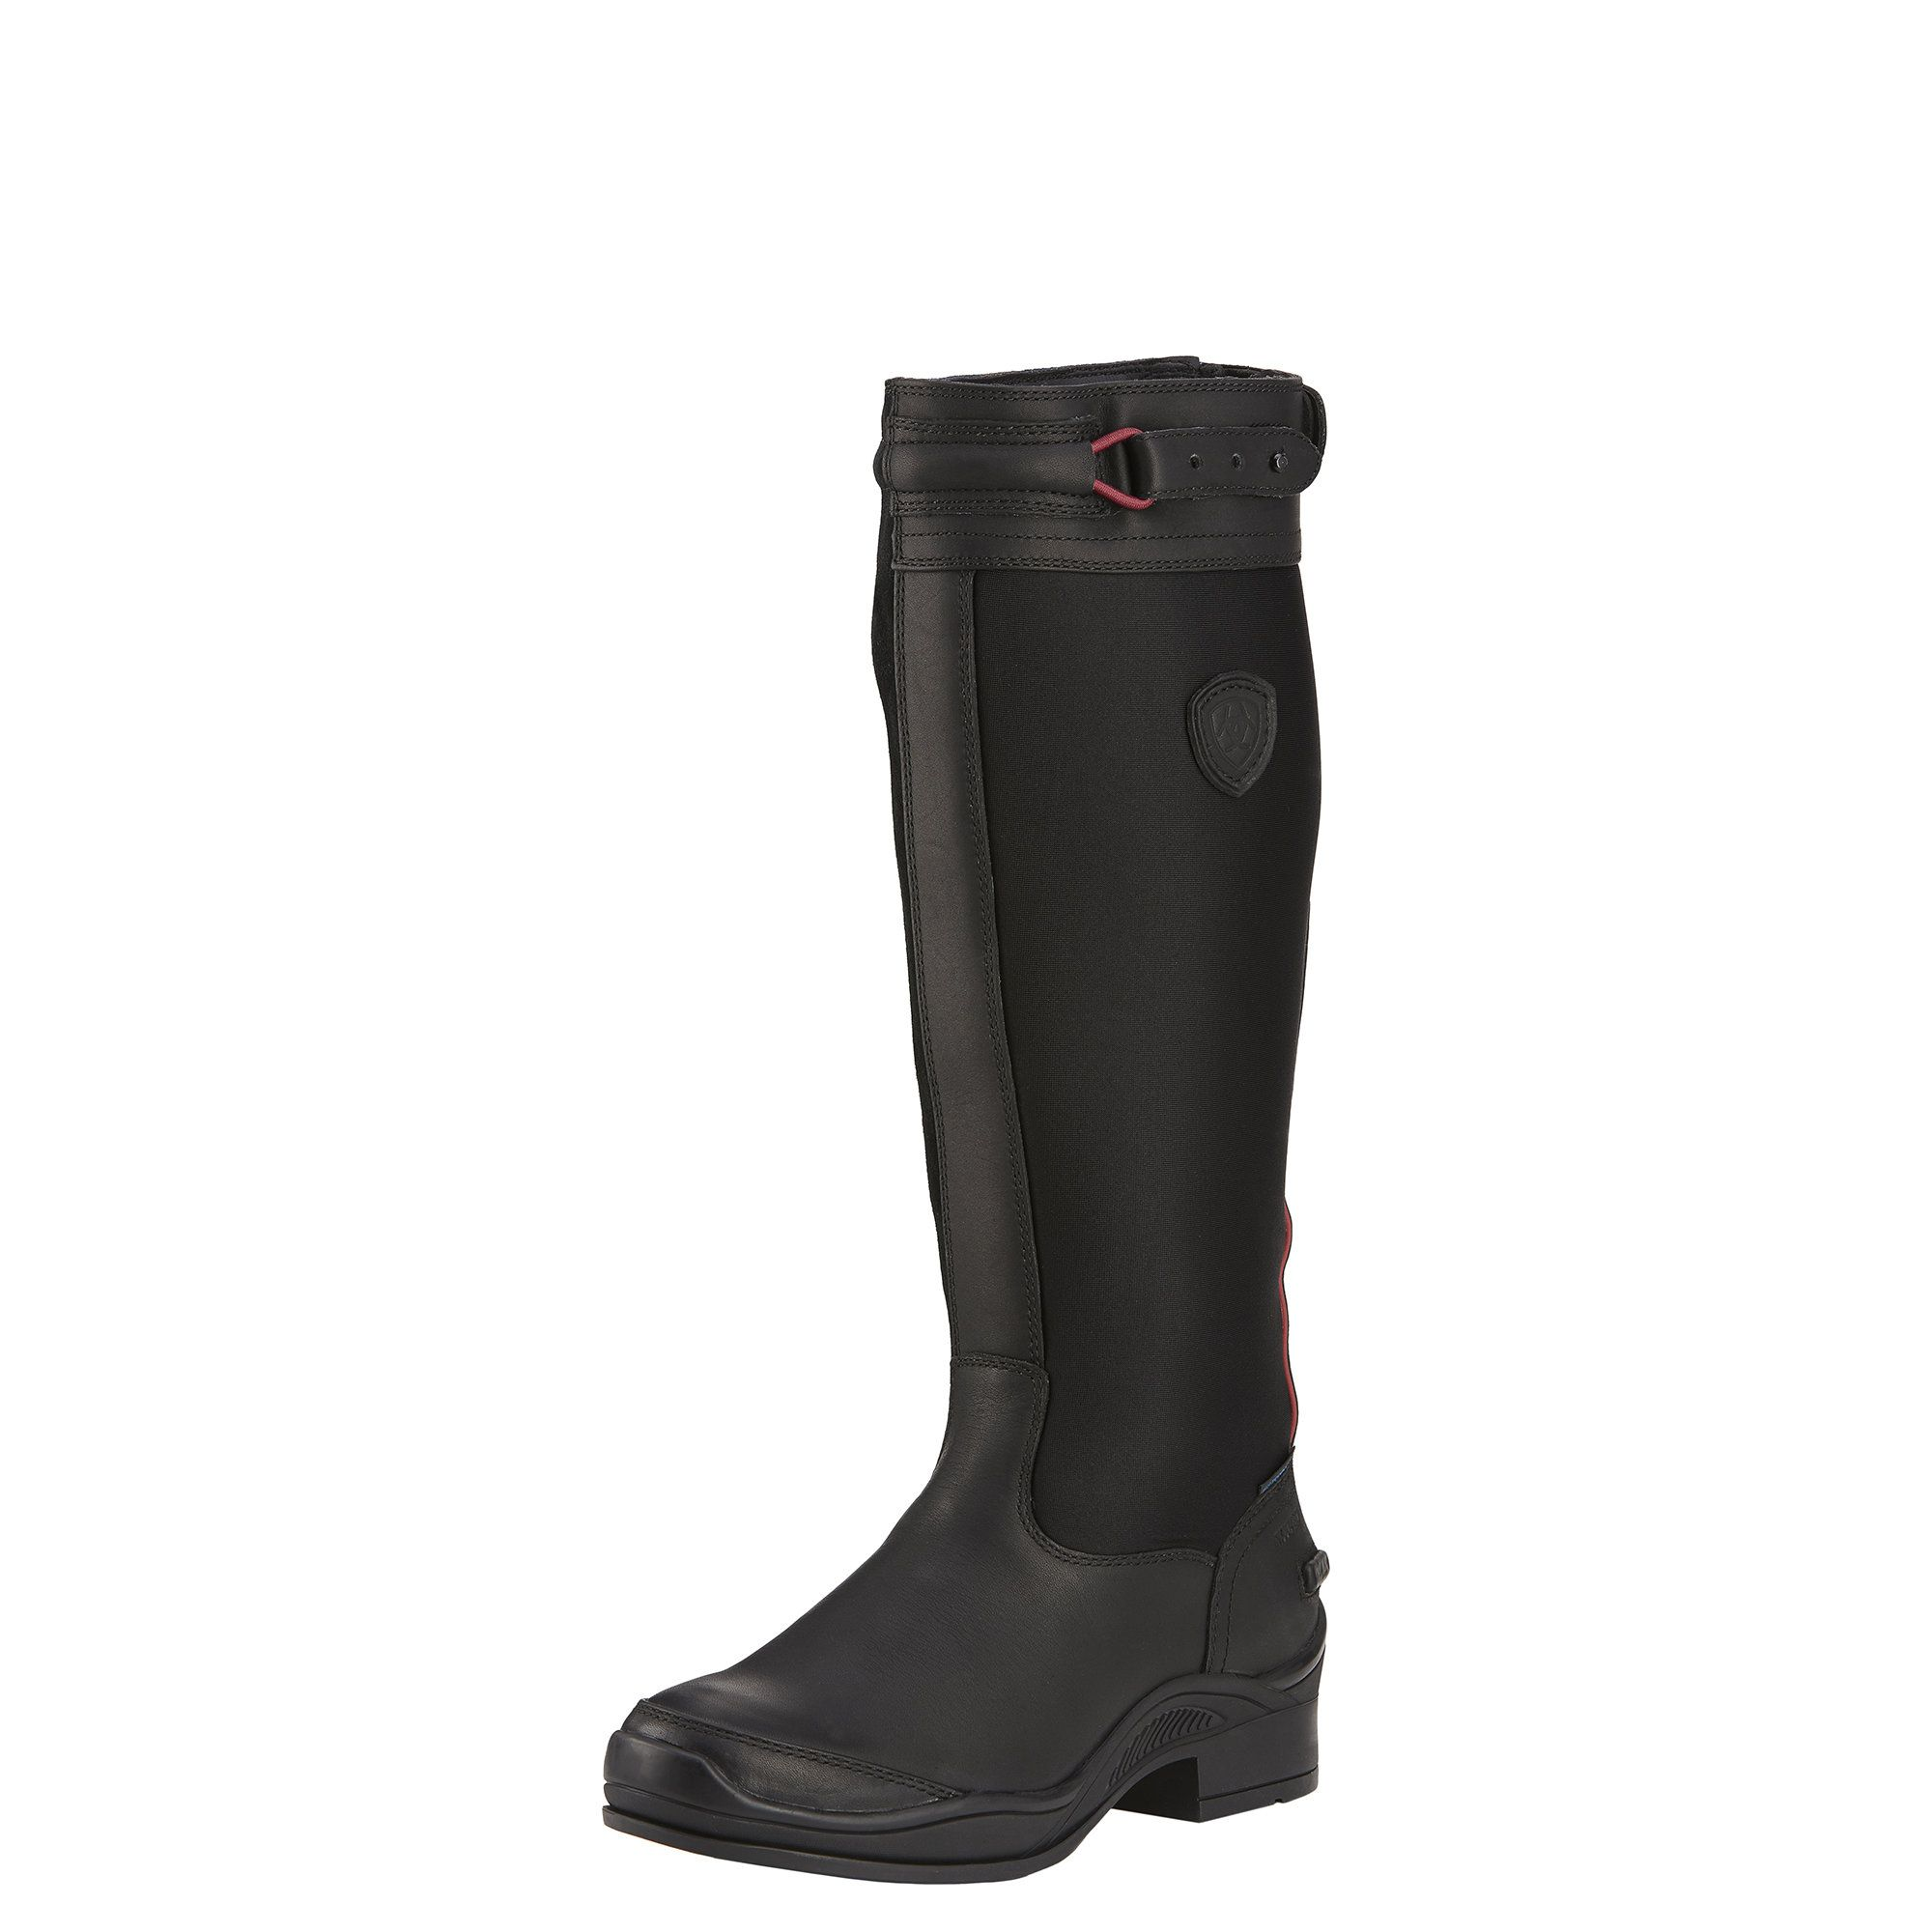 Extreme Tall Waterproof Insulated Tall Riding Boot Riding Boots Insulated Boots Boots